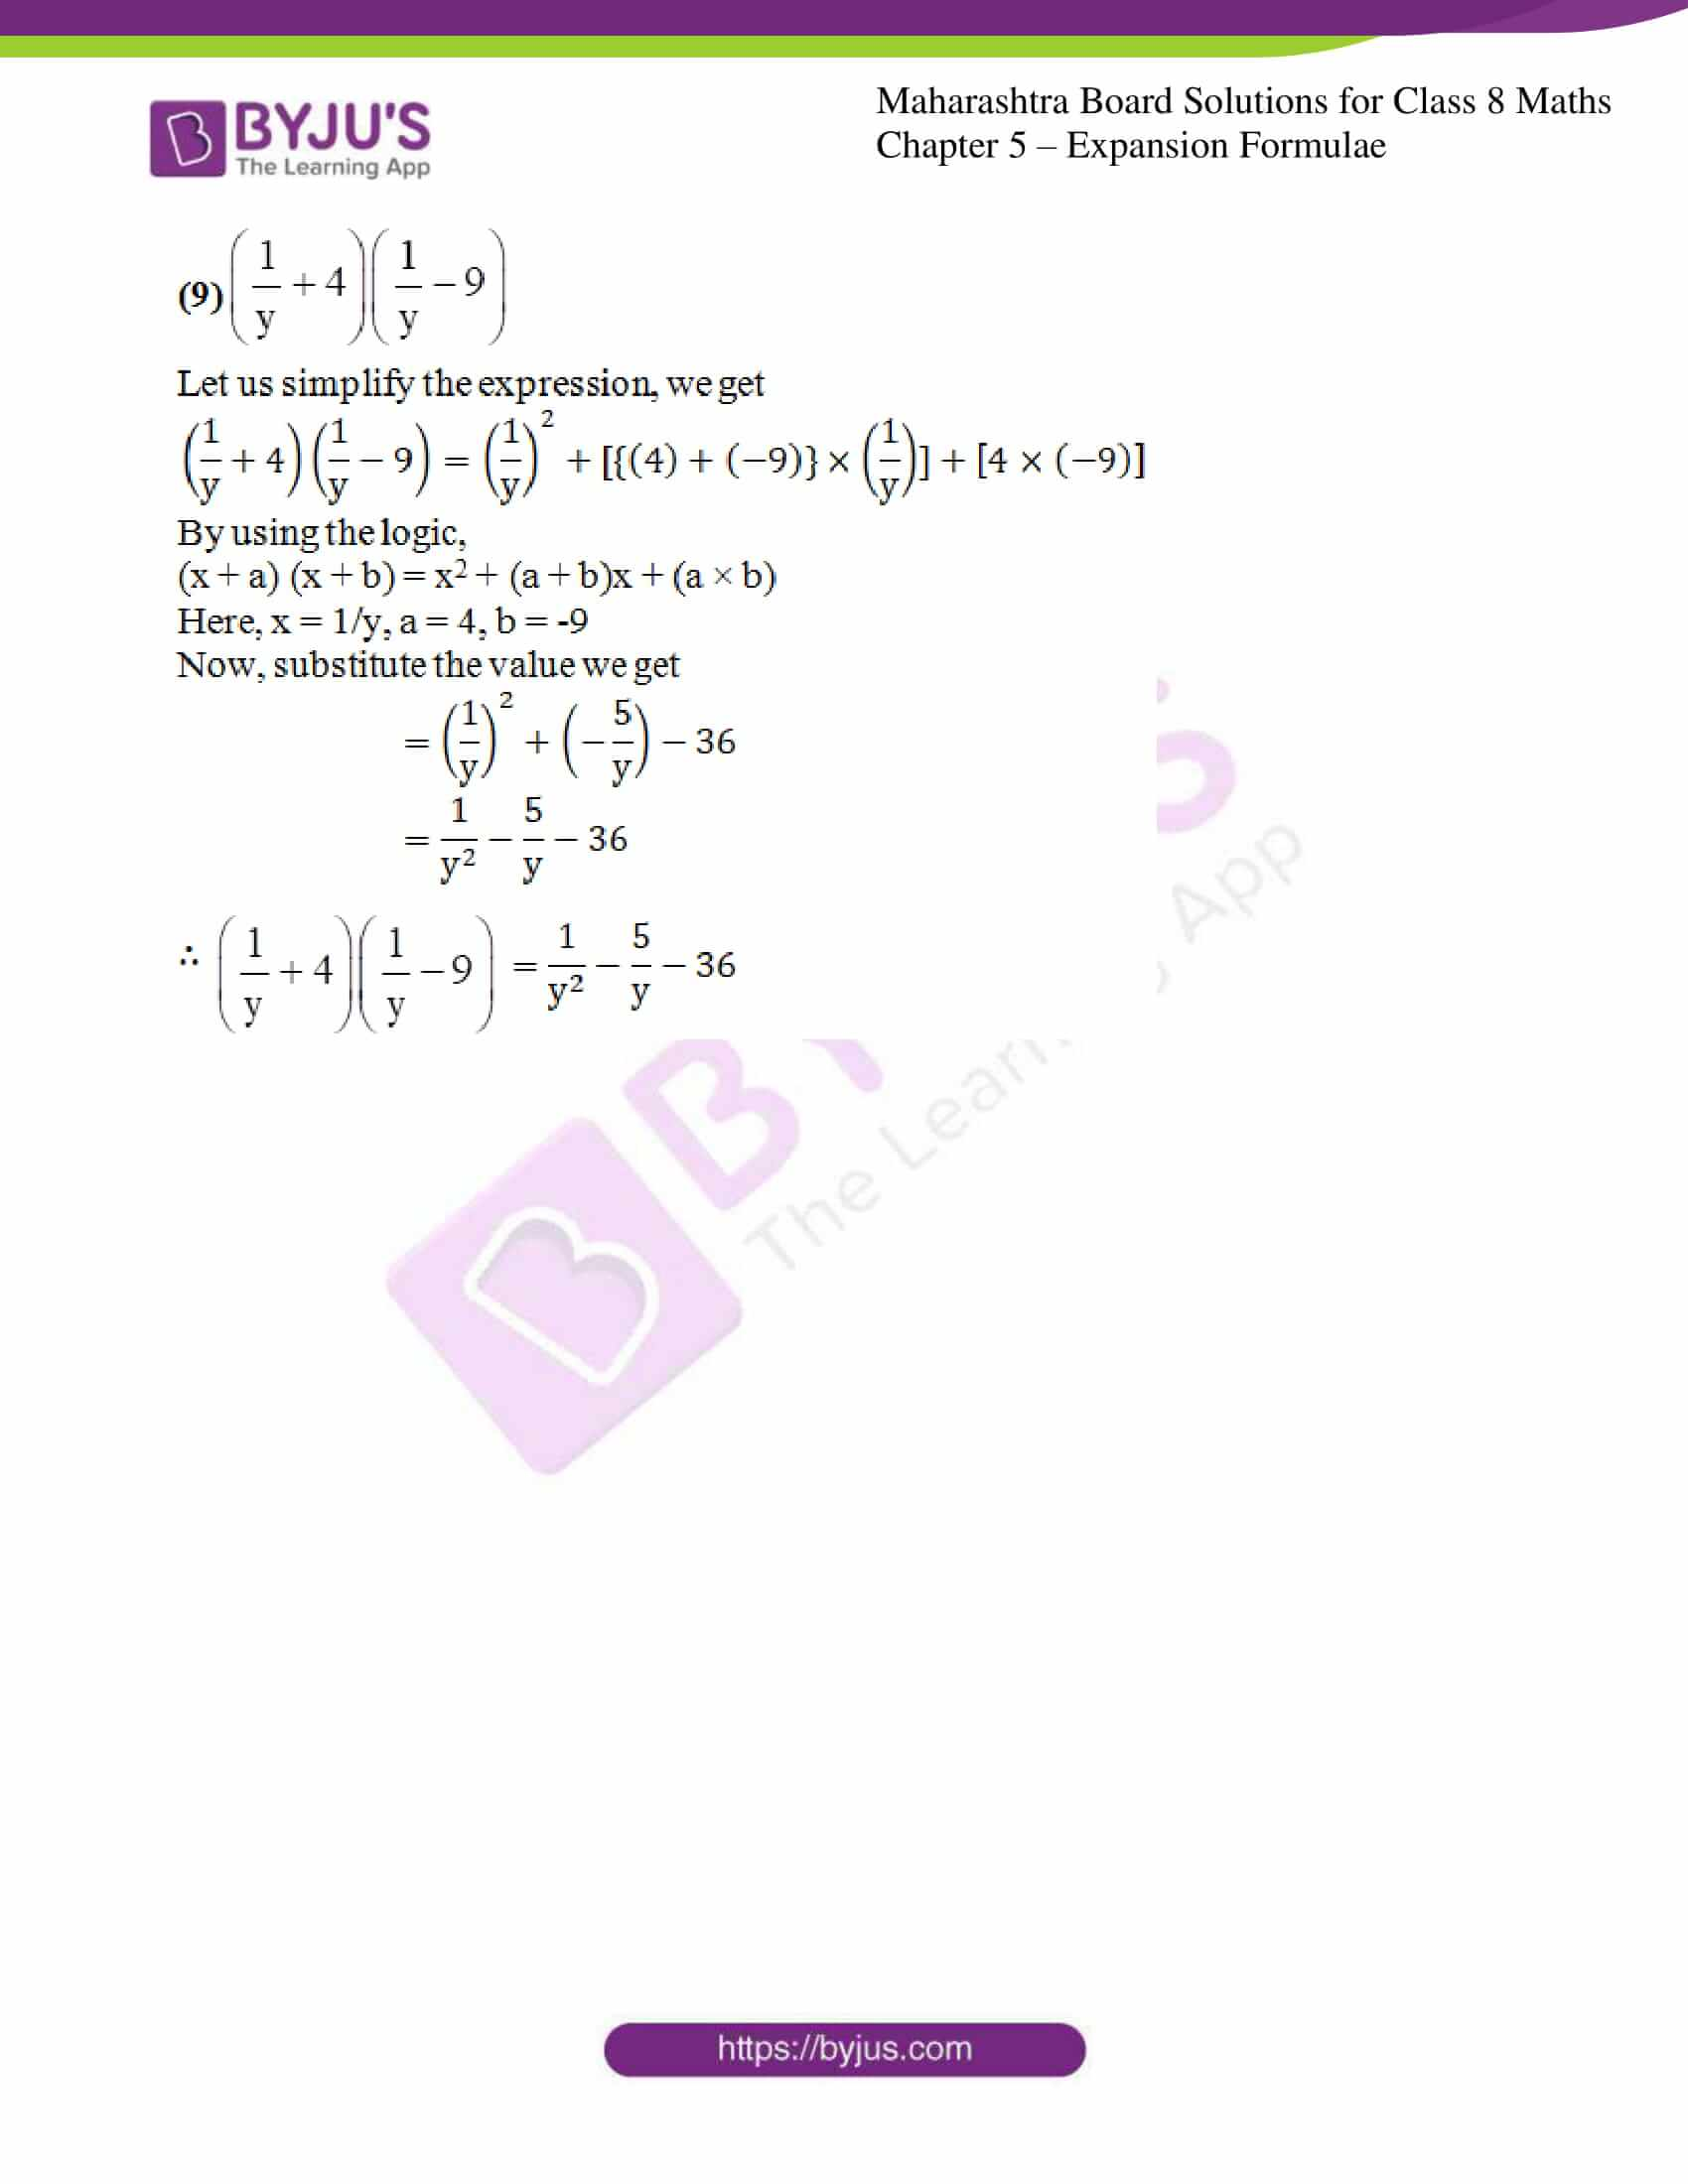 msbshse sol for class 8 maths chapter 5 04